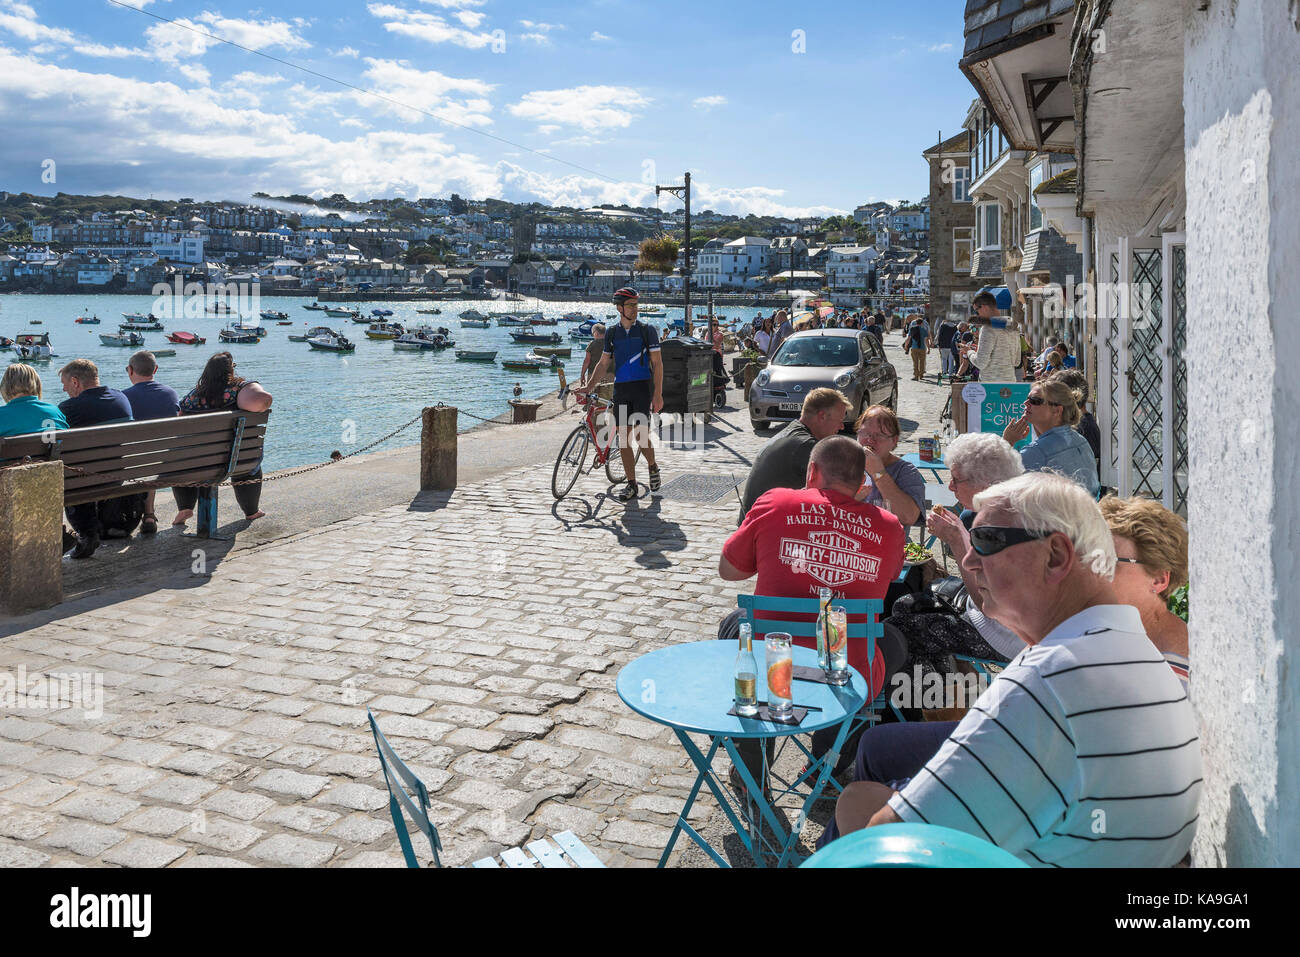 St Ives - holidaymakers relaxing on harbourside at St Ives Harbour in Cornwall. - Stock Image